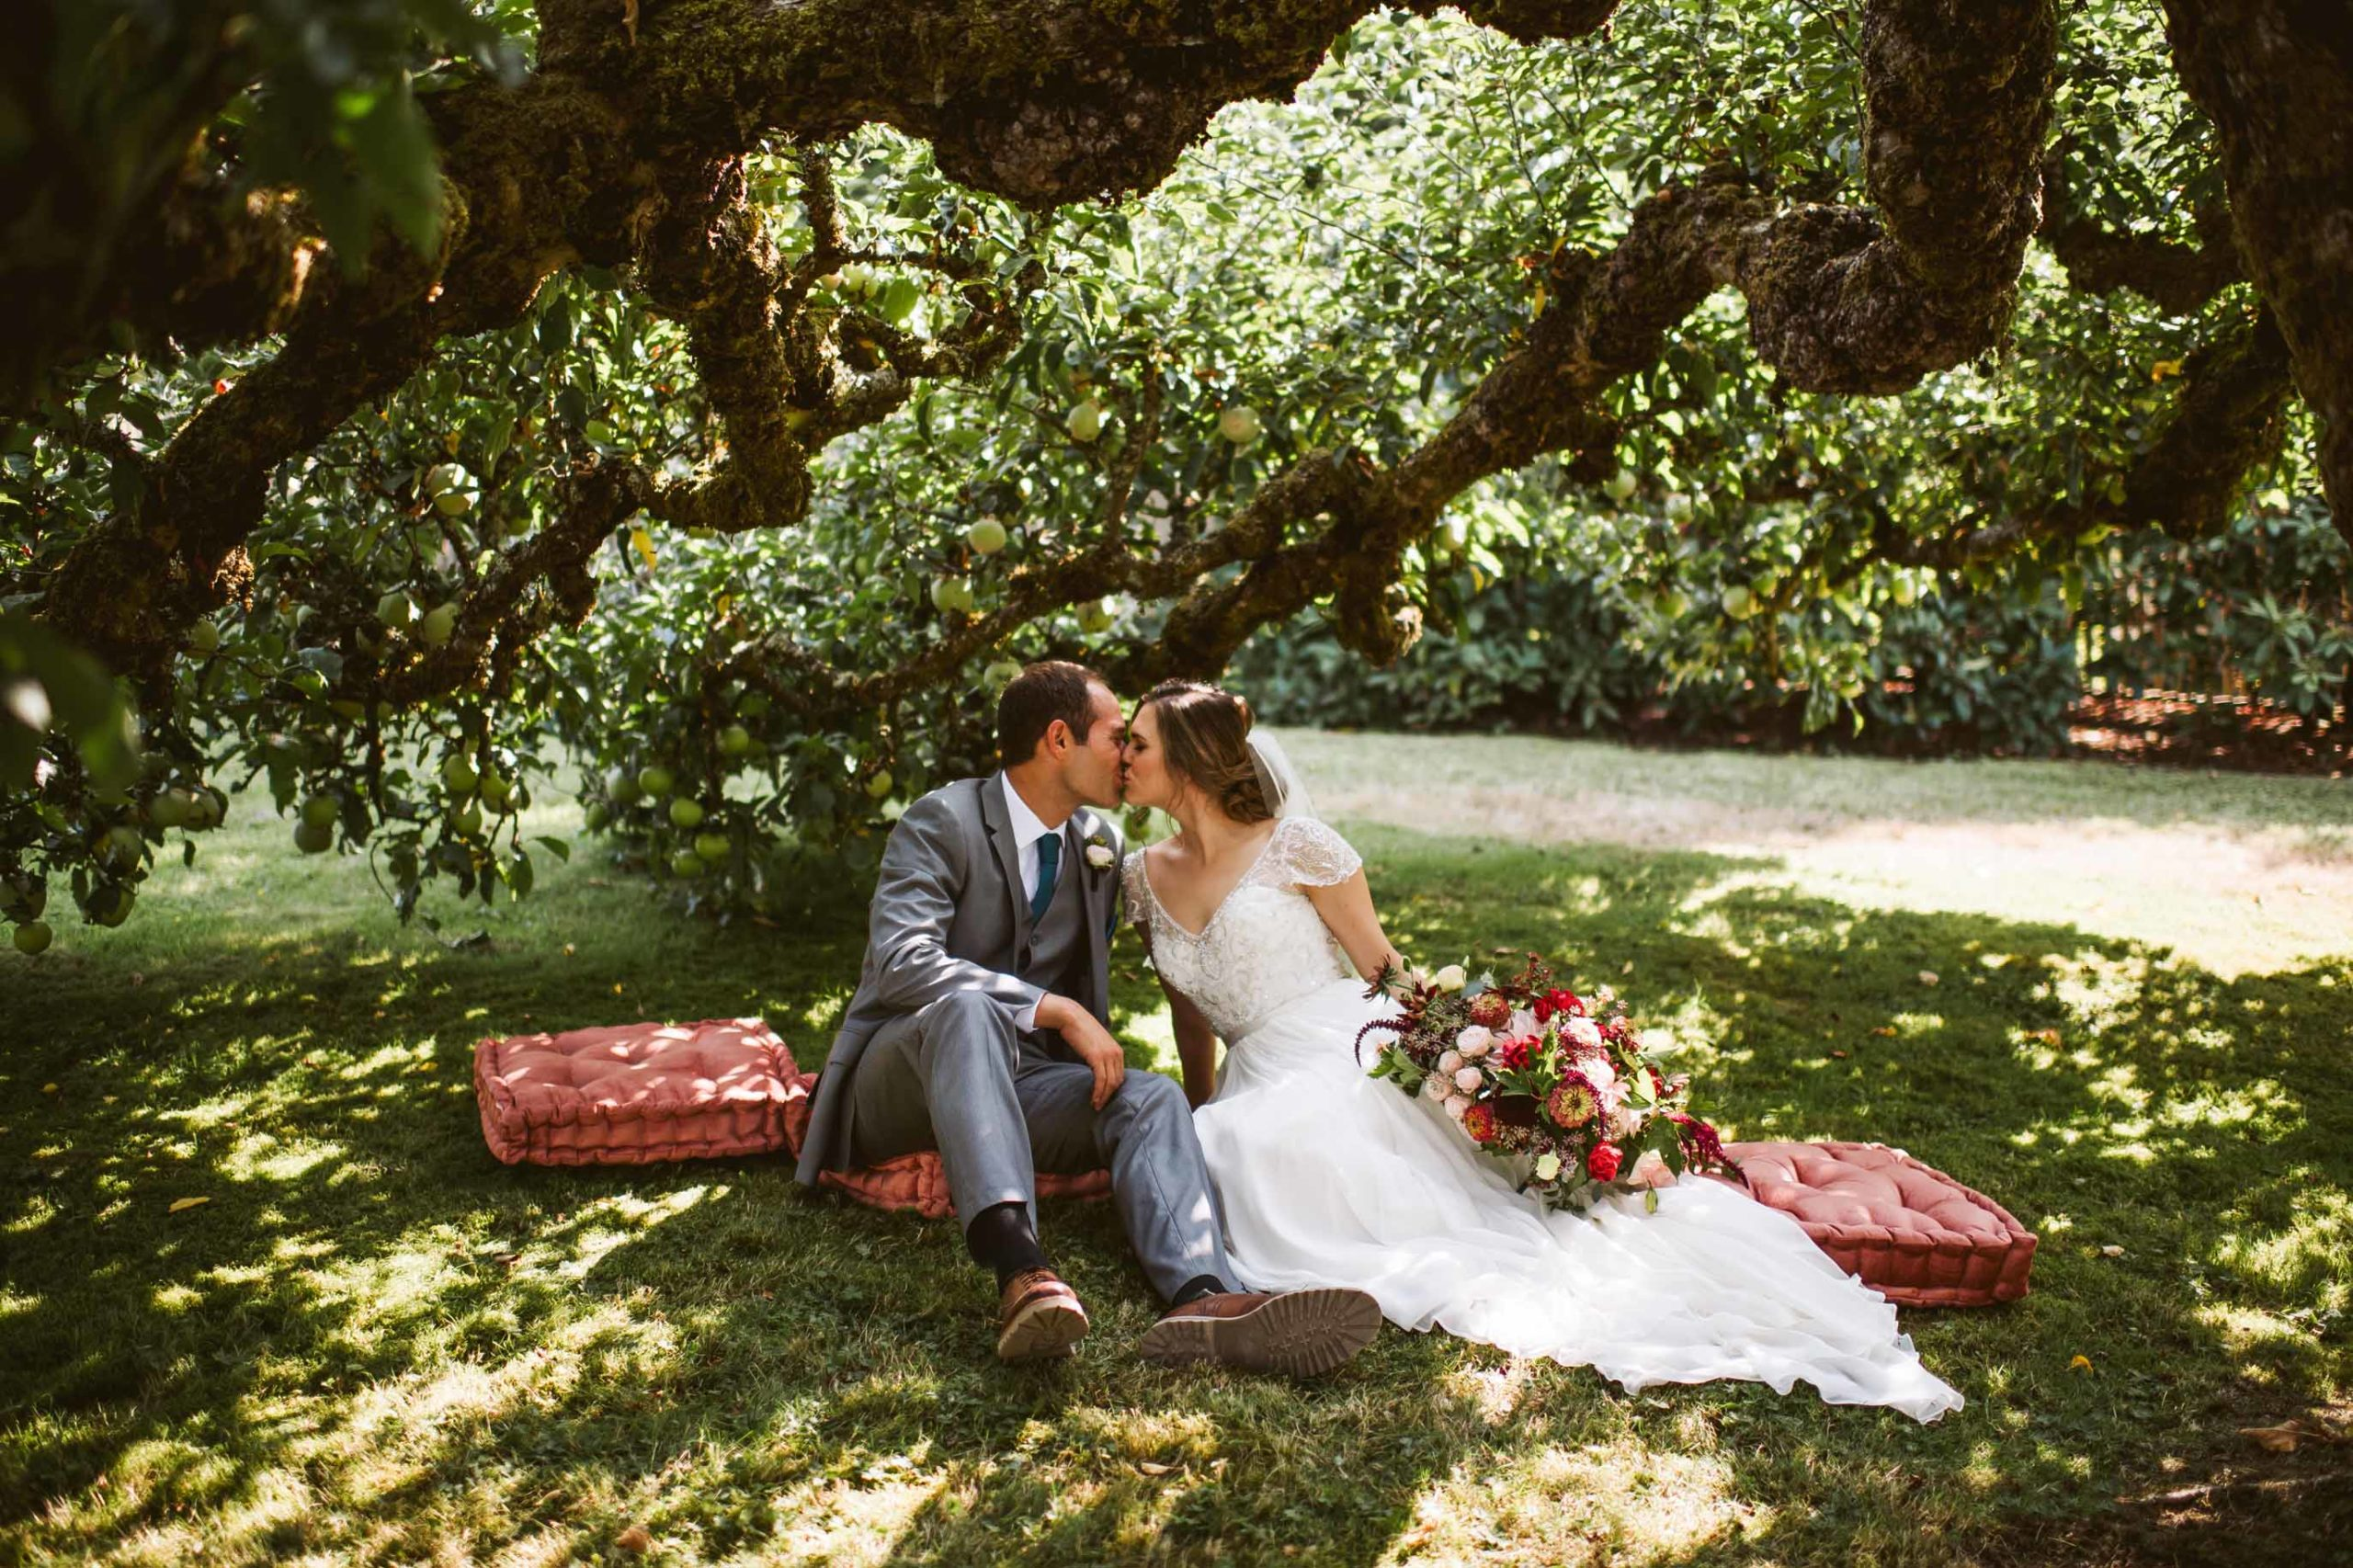 Kissing under the apple trees in the brides family orchard on their wedding day at an intimate summer garden wedding on Lake Washington.